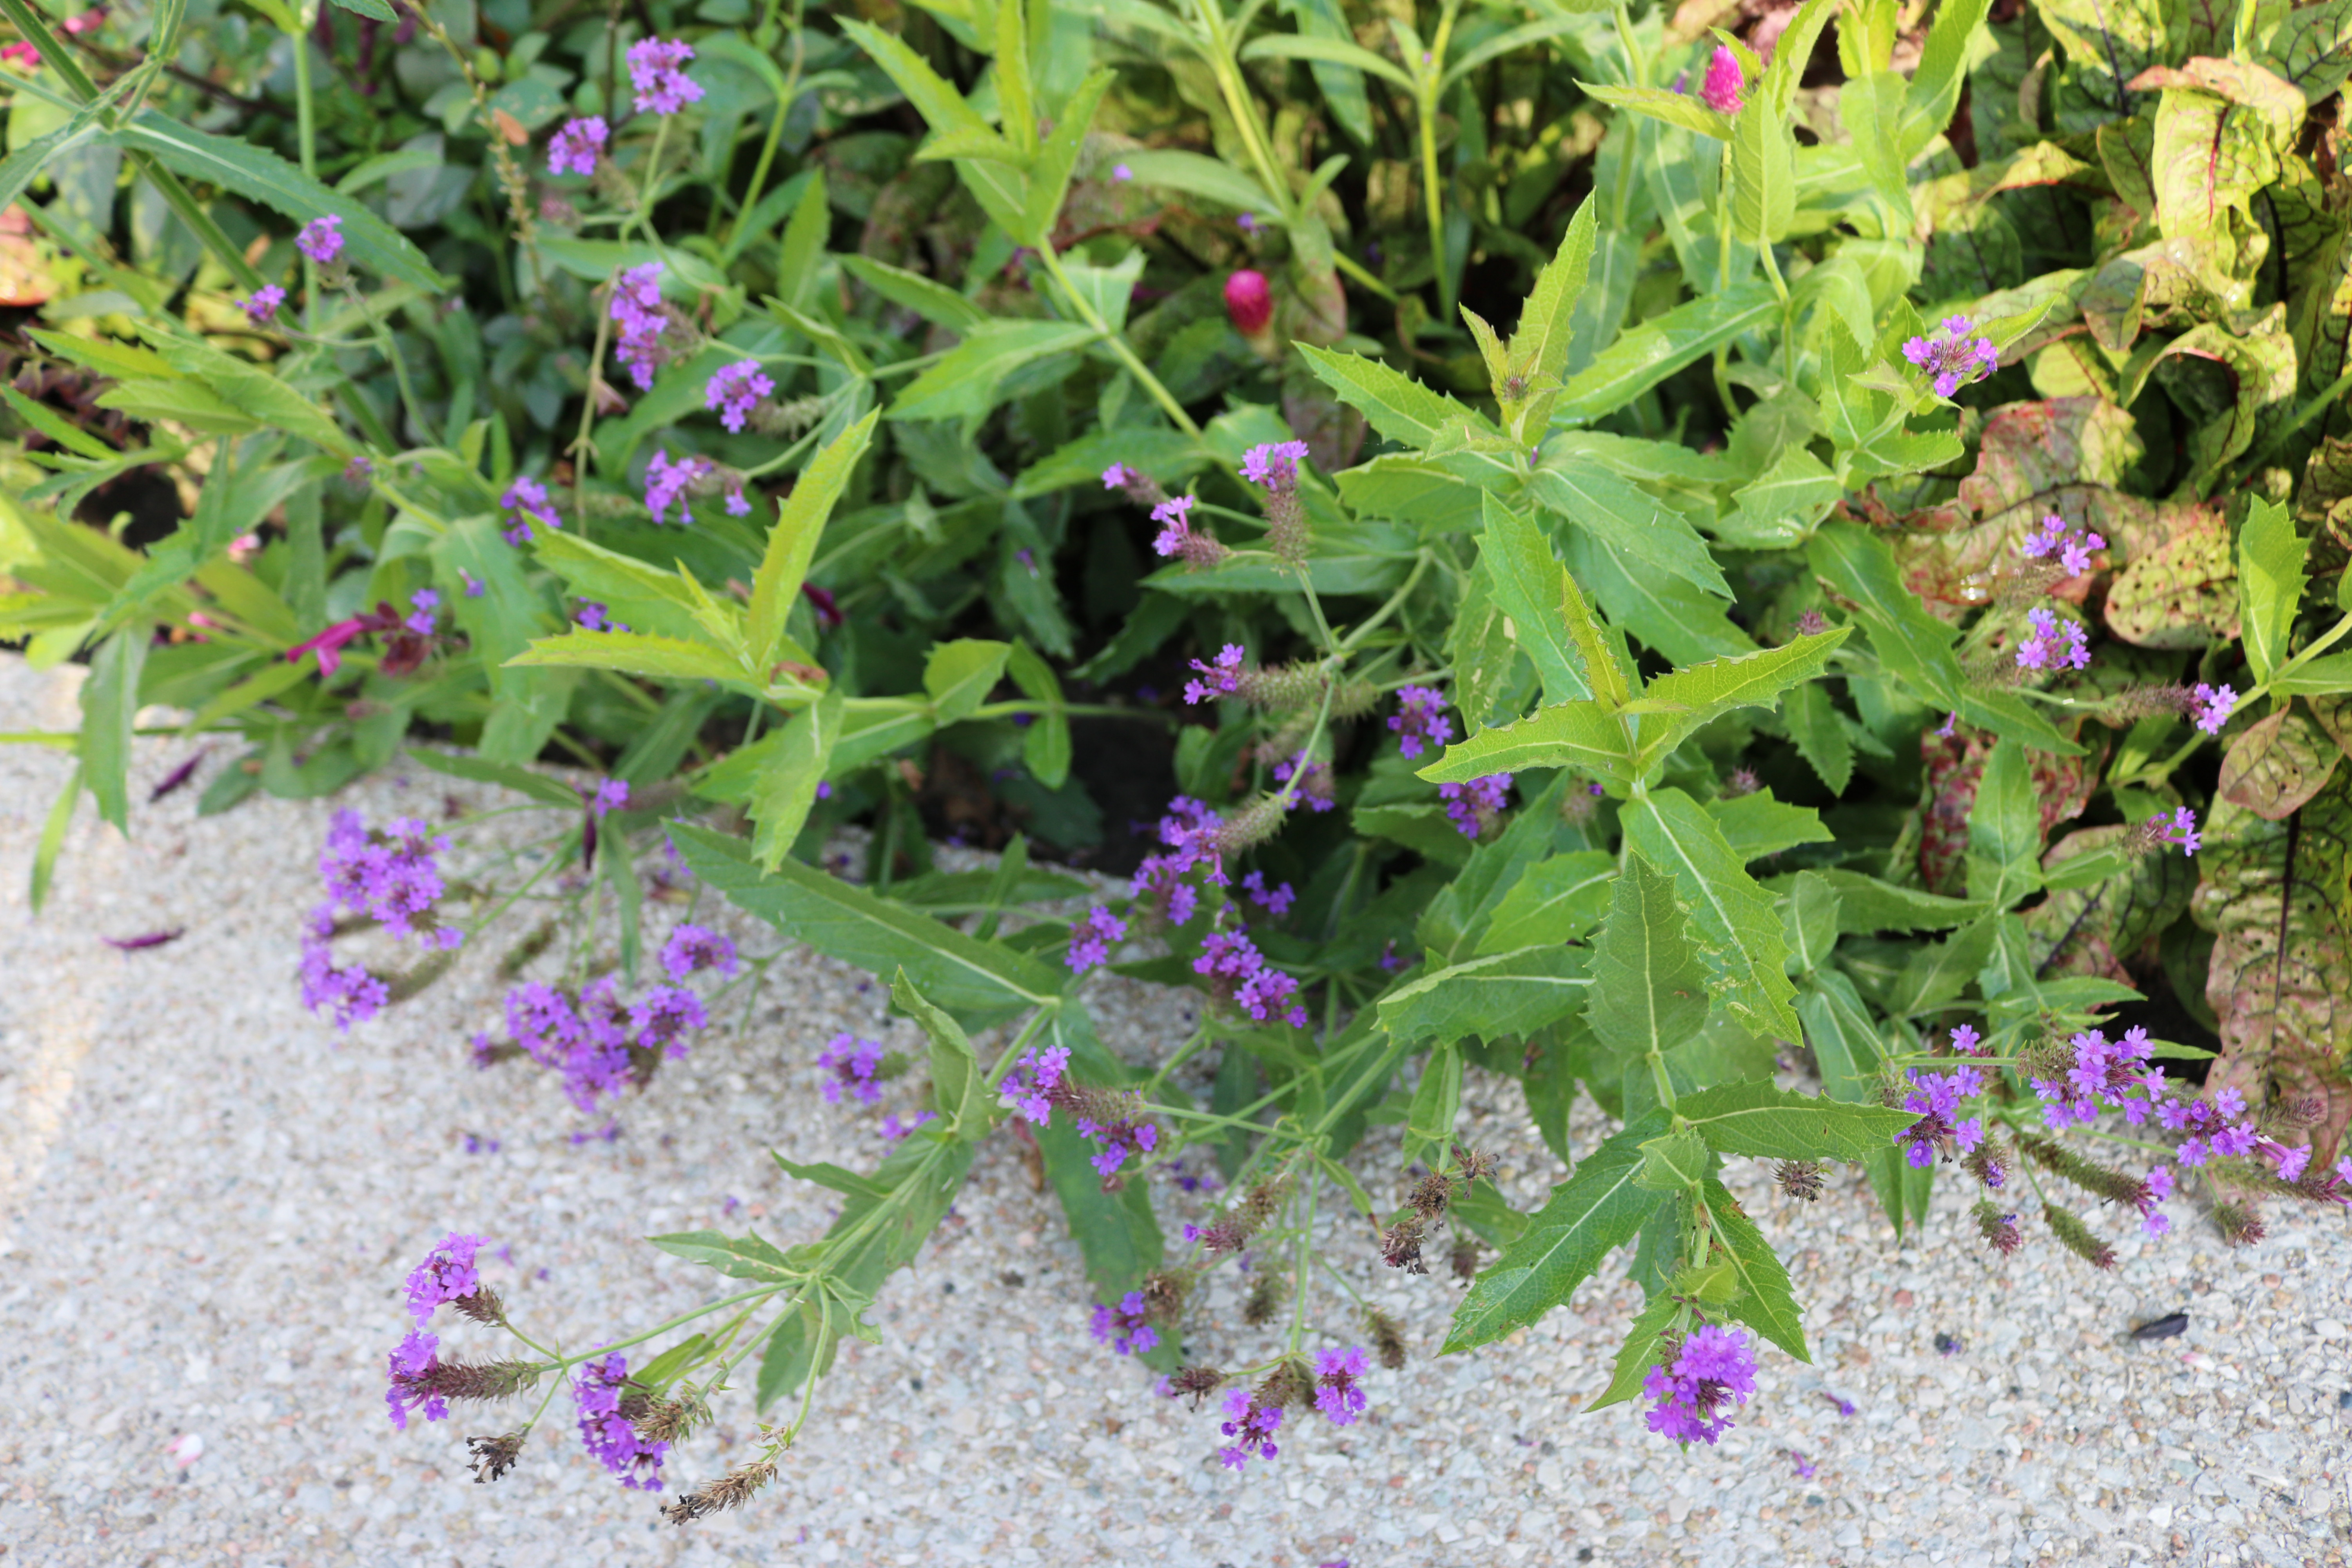 Verbena rigida 'Santos' Rough Verbena on the espalier wall. Photo by Leslie Hunter.